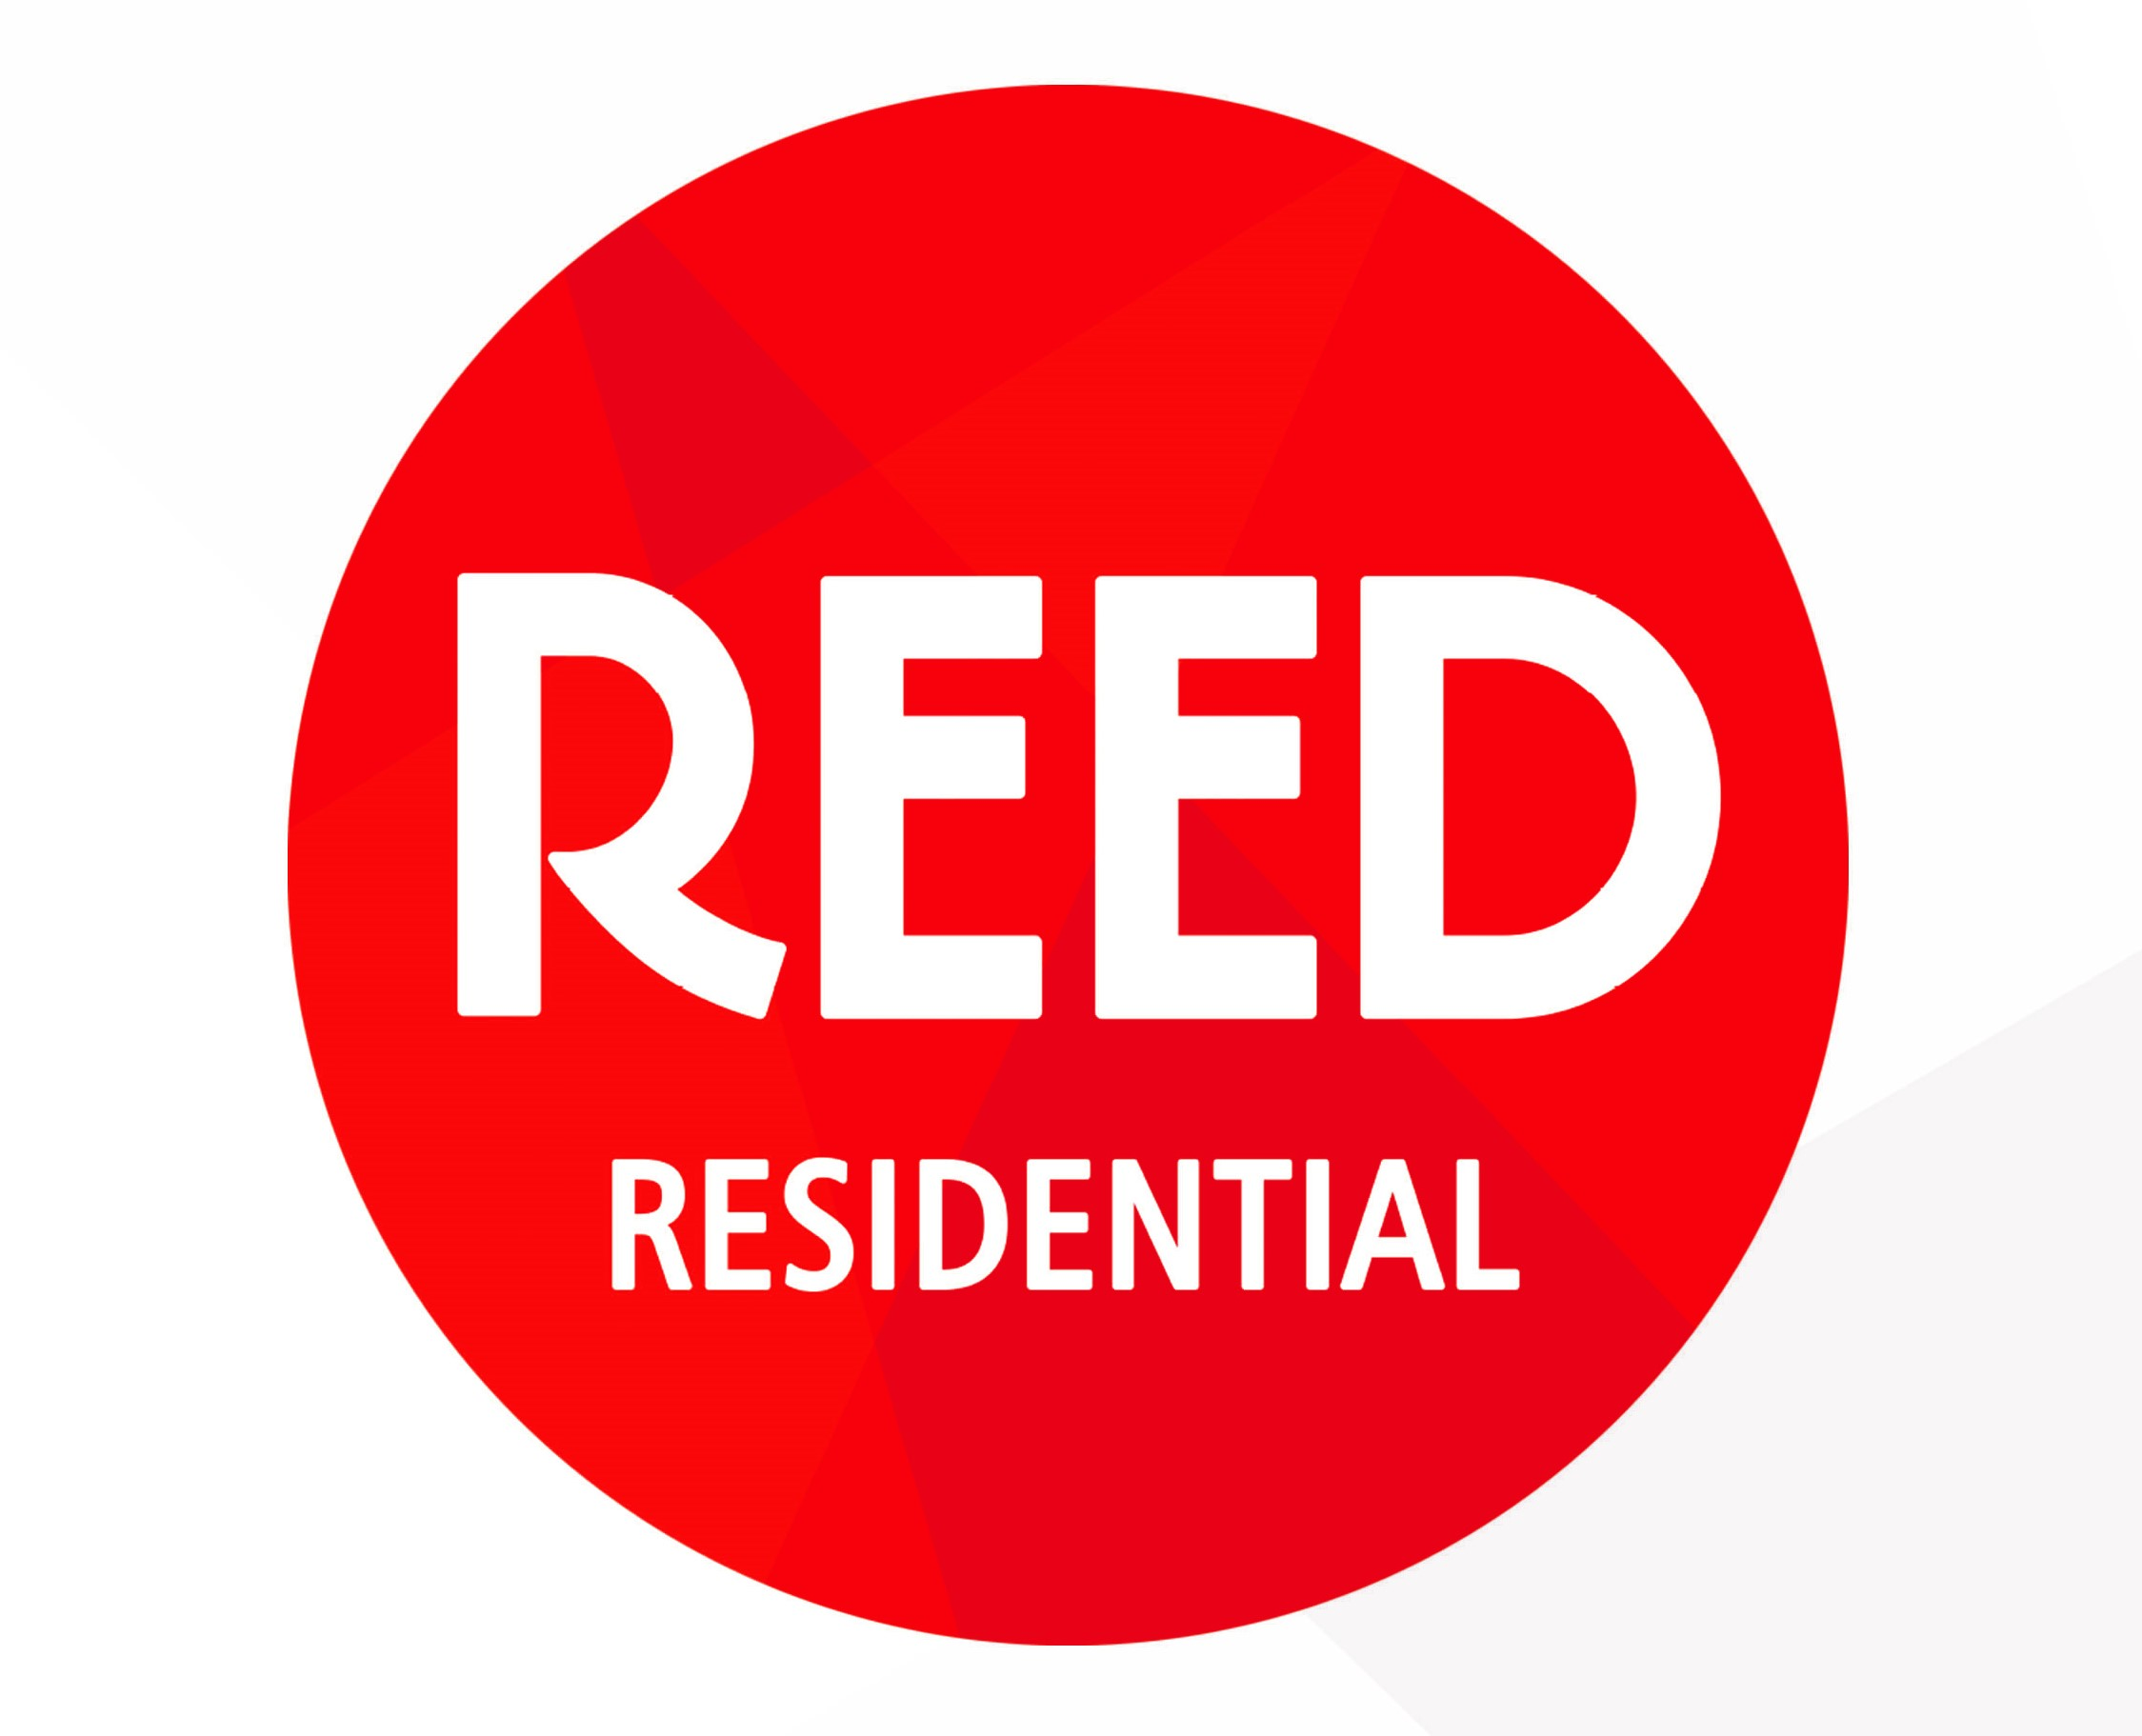 Reed Residential (Westcliff on Sea)